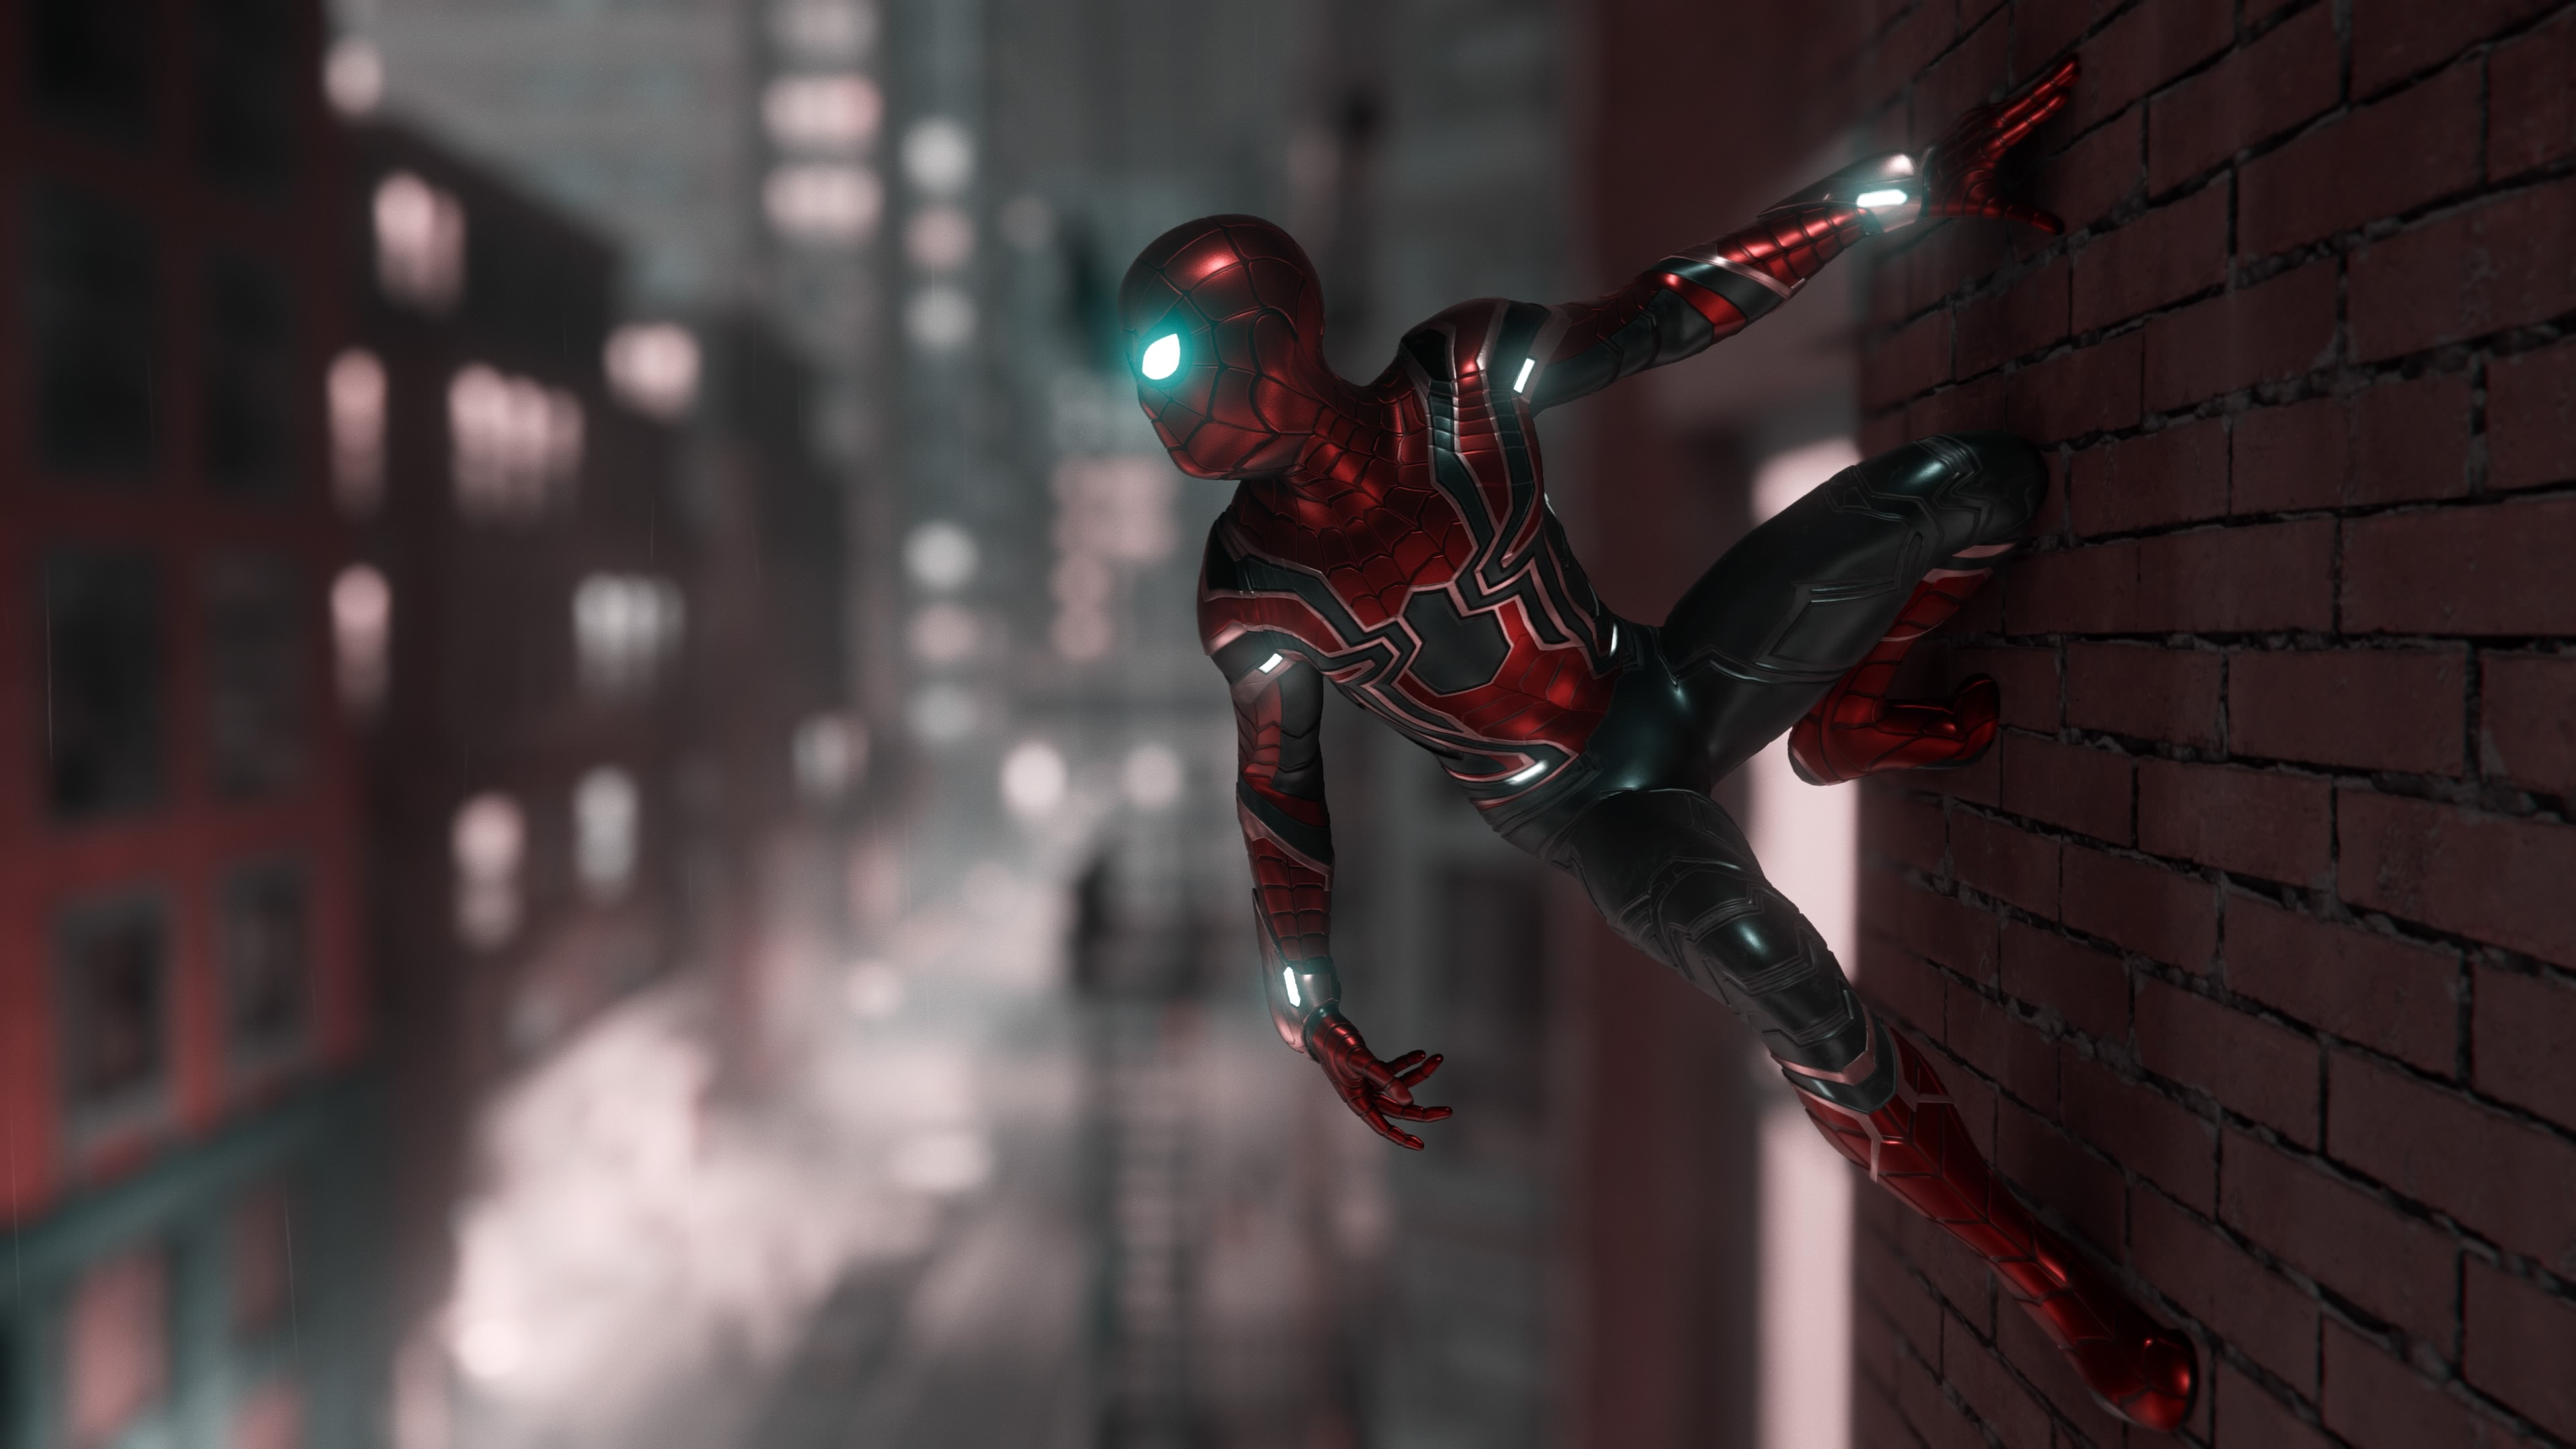 marvel spiderman ps4 4k 1548526917 - Marvel Spiderman Ps4 4k - supervillain wallpapers, spiderman wallpapers, spiderman ps4 wallpapers, ps games wallpapers, hd-wallpapers, games wallpapers, 4k-wallpapers, 2019 games wallpapers